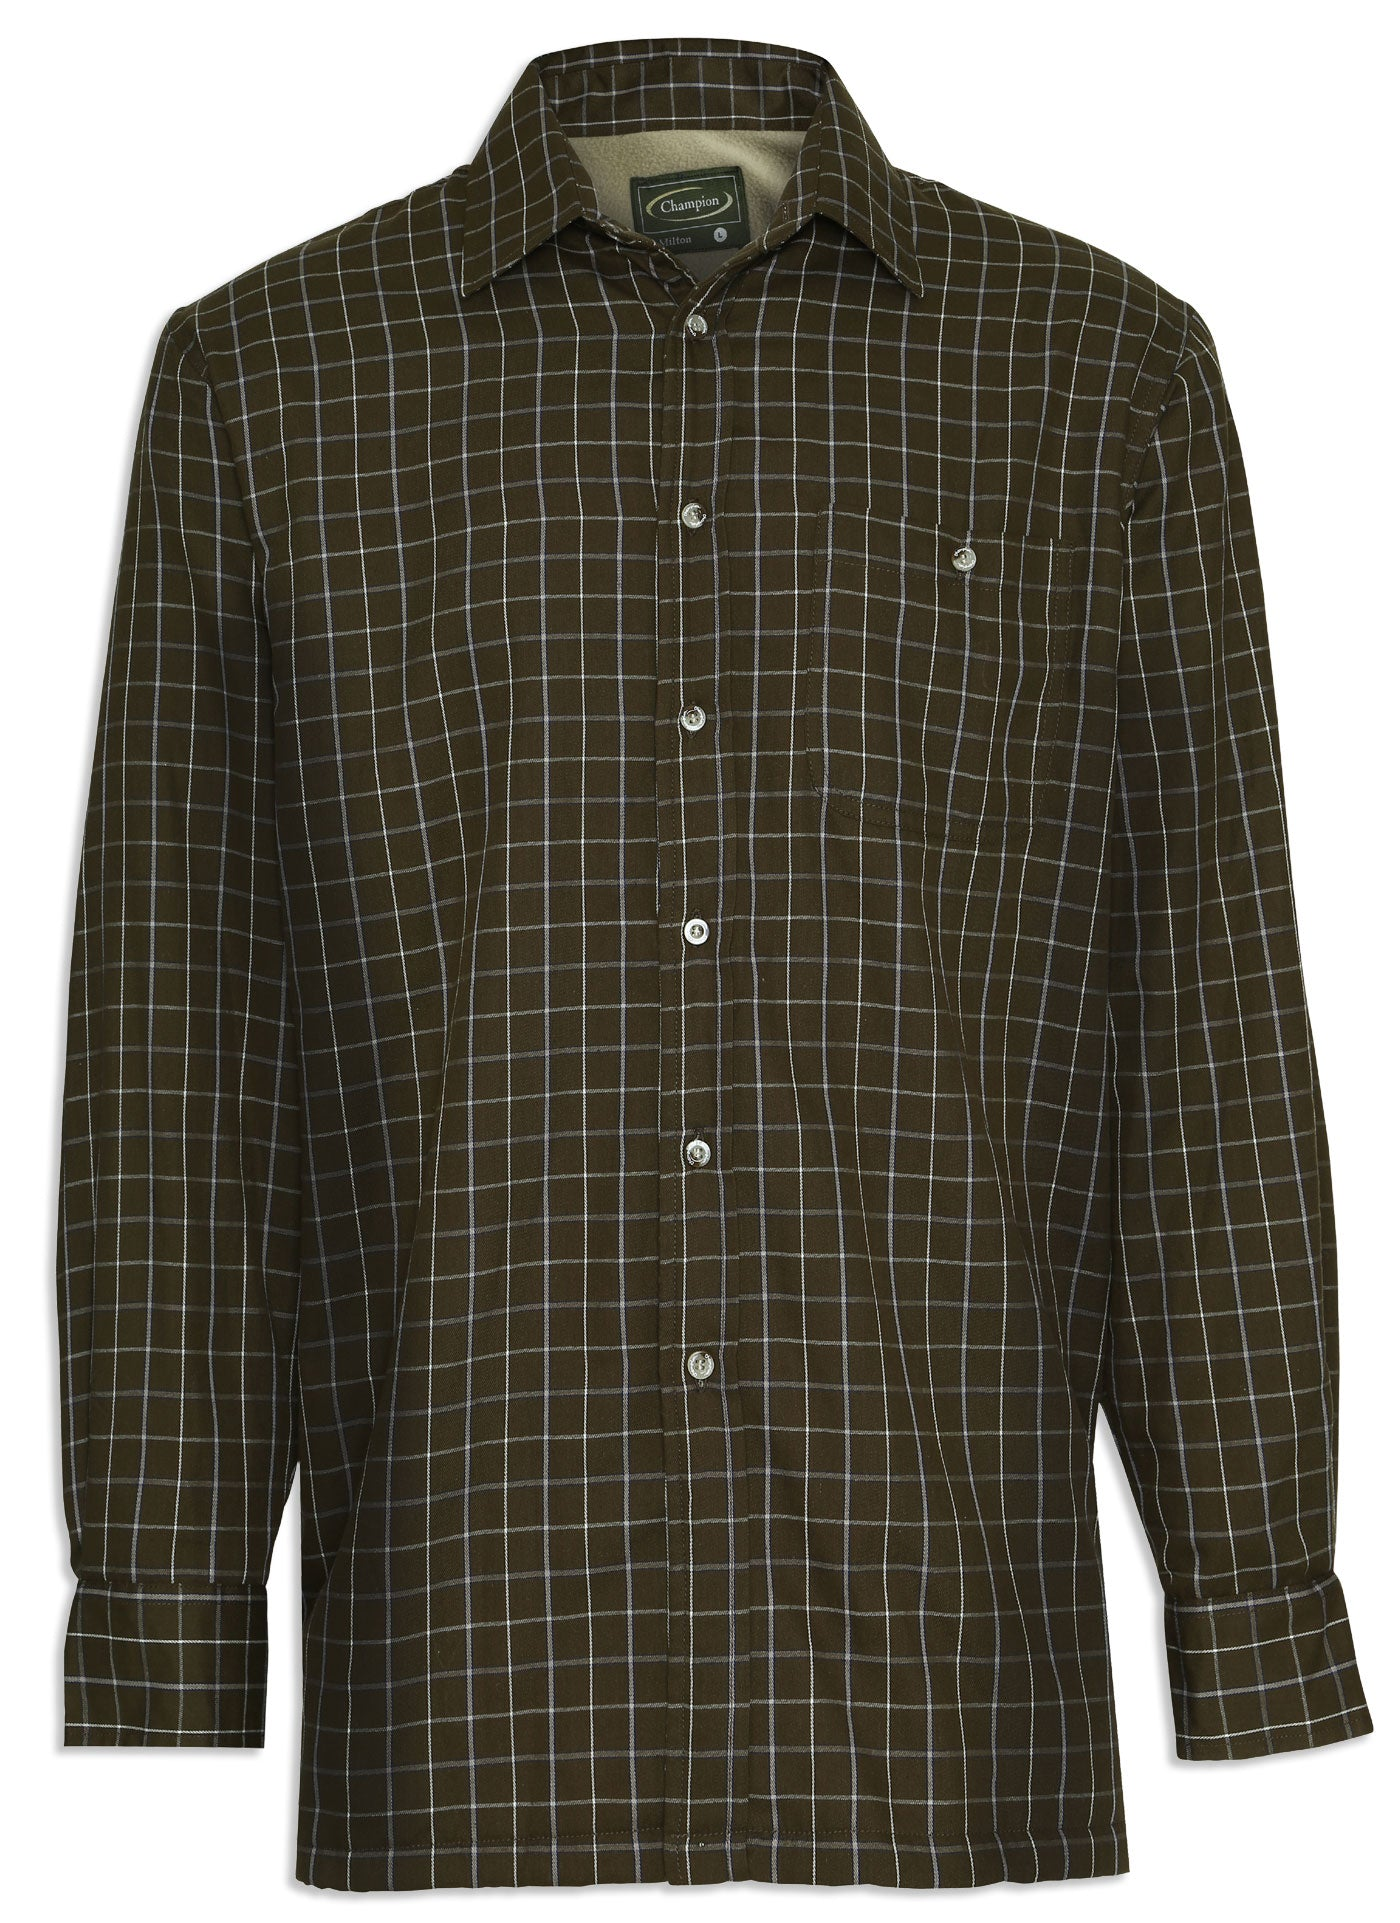 Champion Milton Micro Fleece Lined Shirt in green